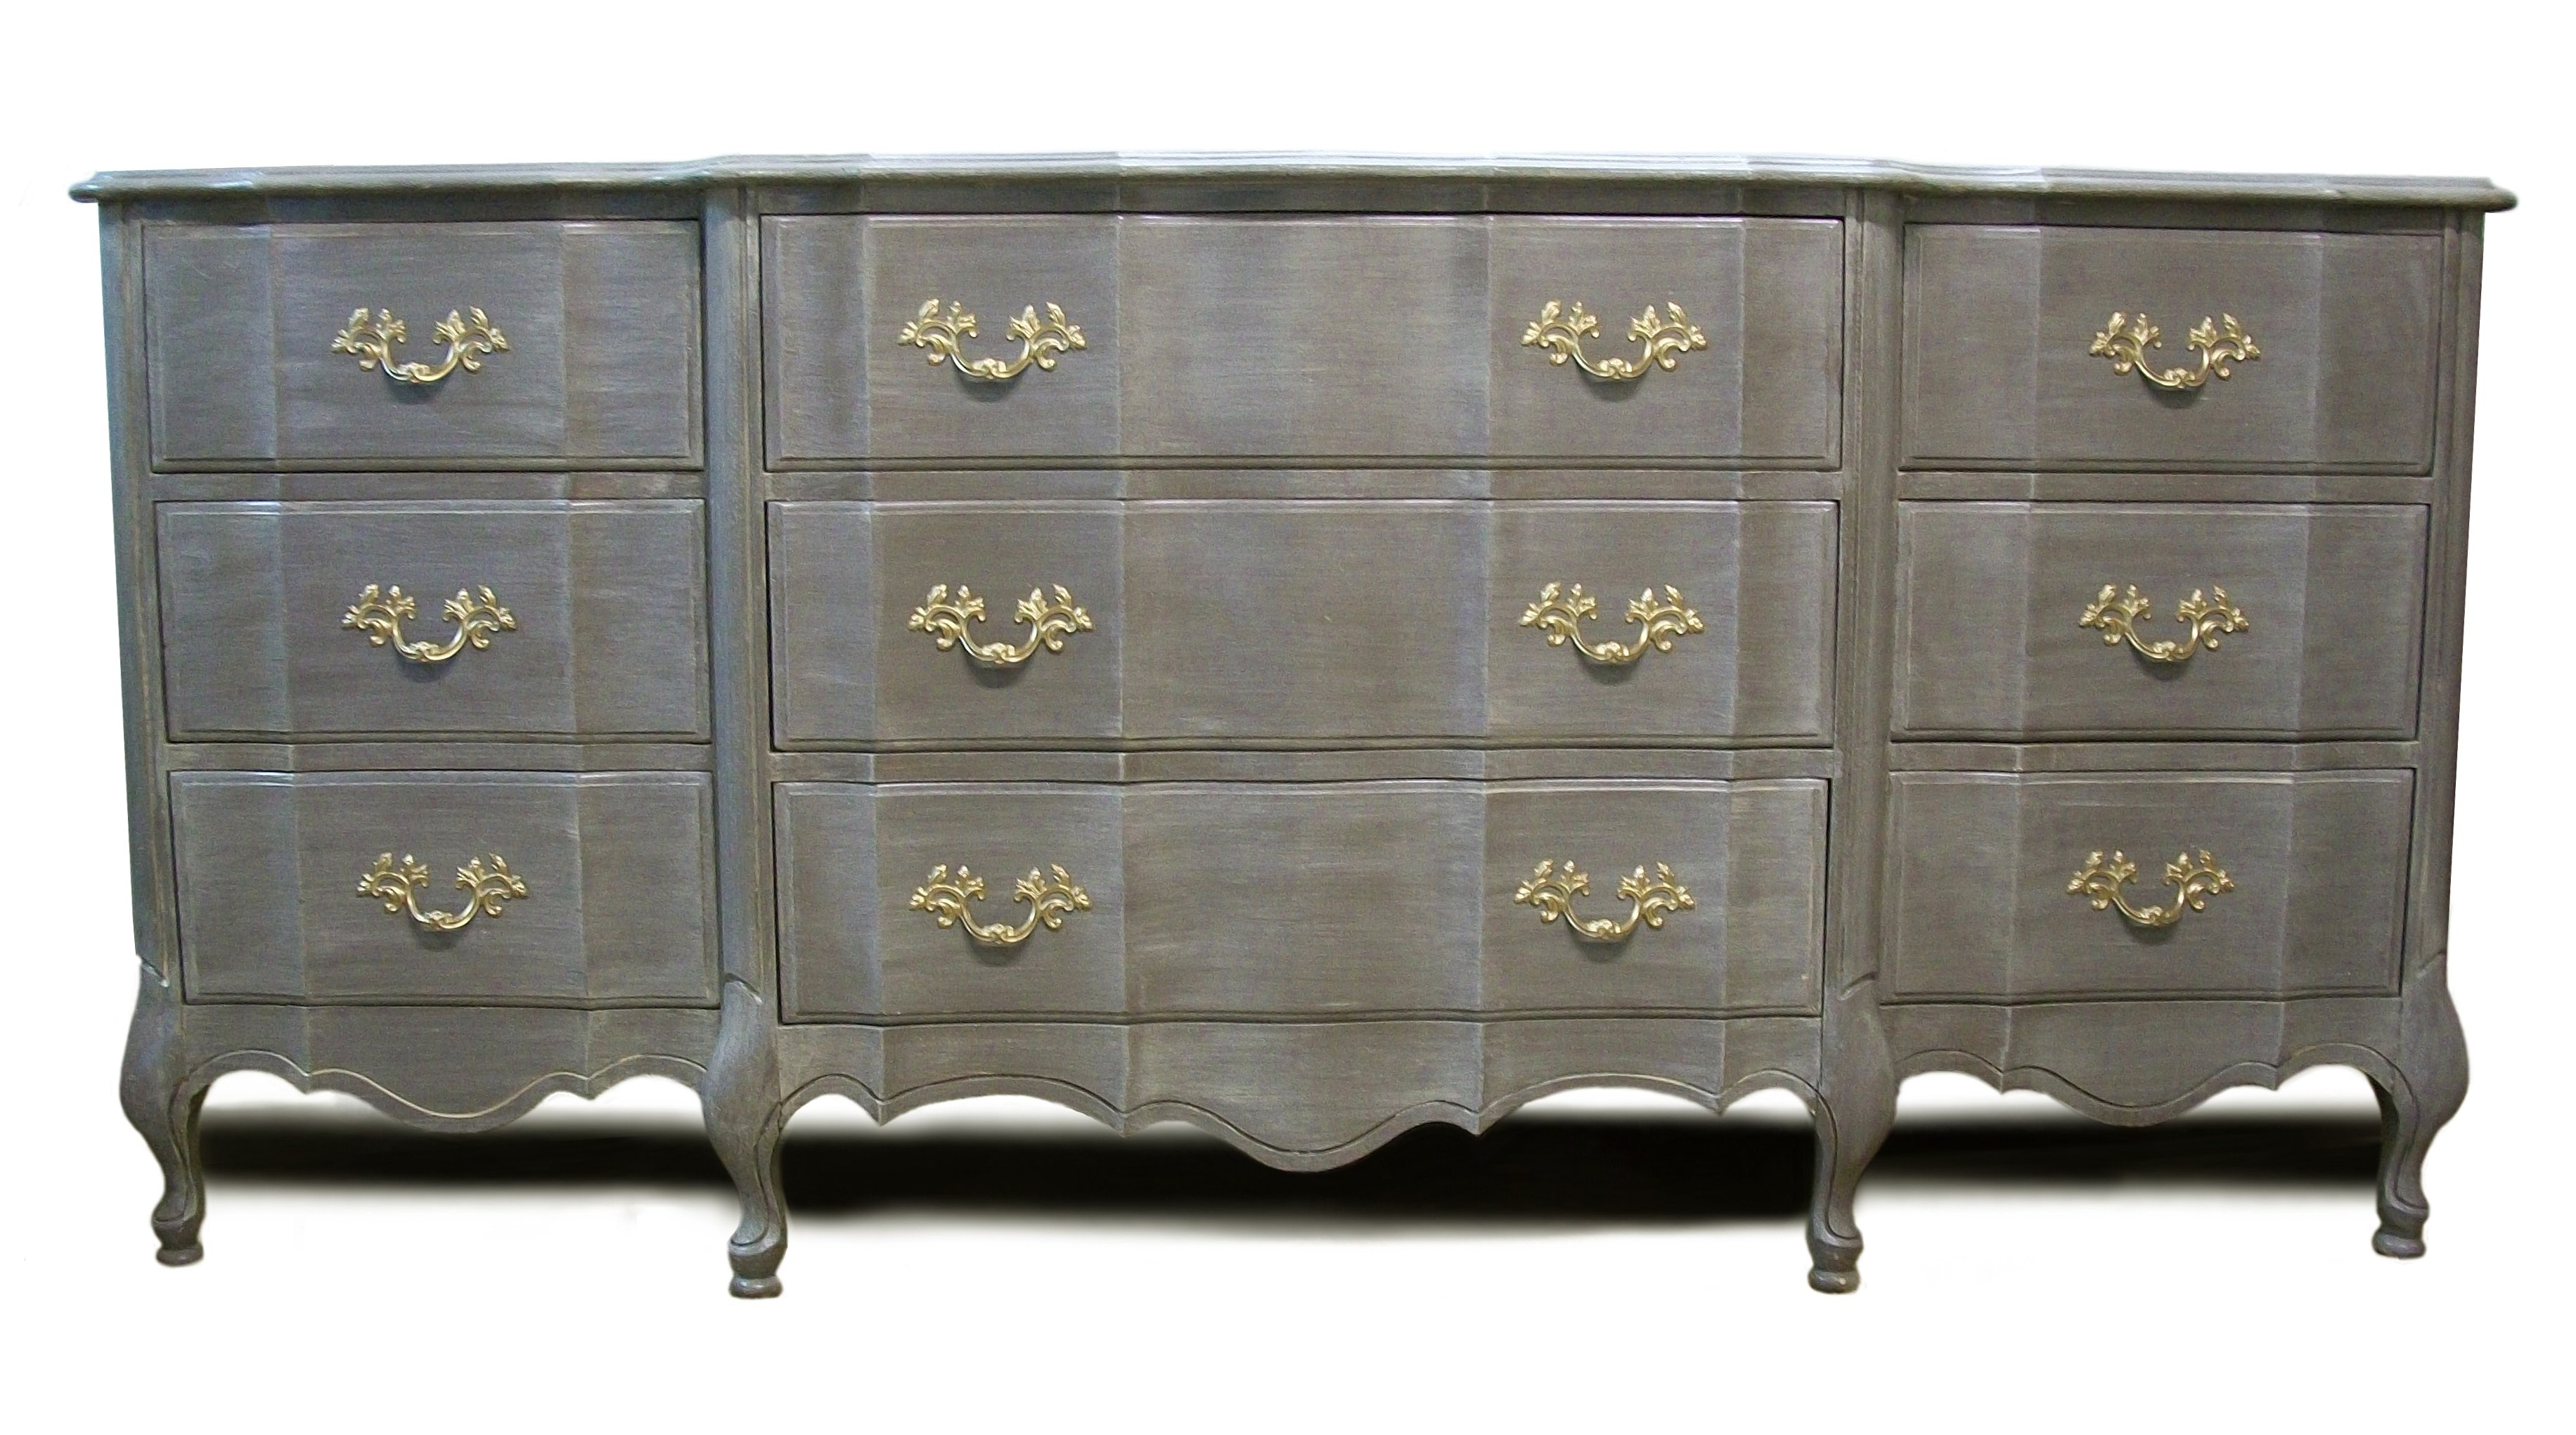 French provincial painted finishes distressed finishes Images of painted furniture